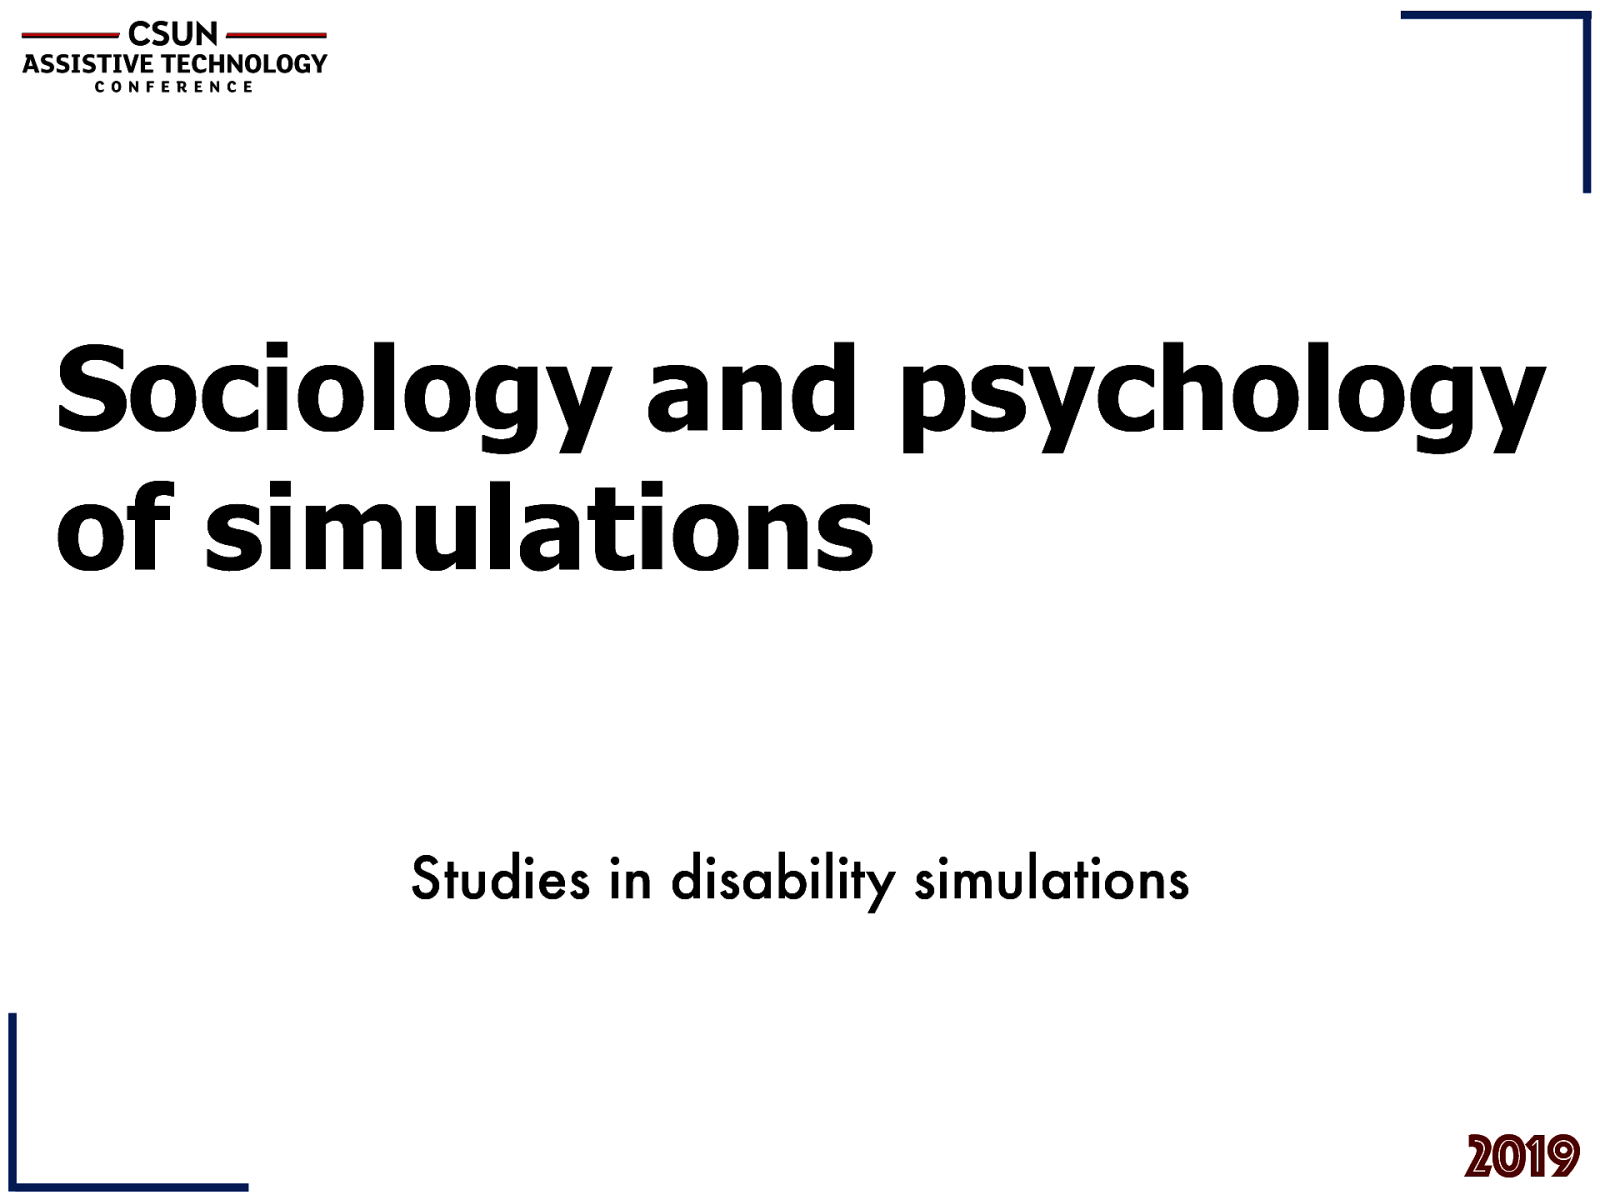 Sociology and psychology of disability simulations